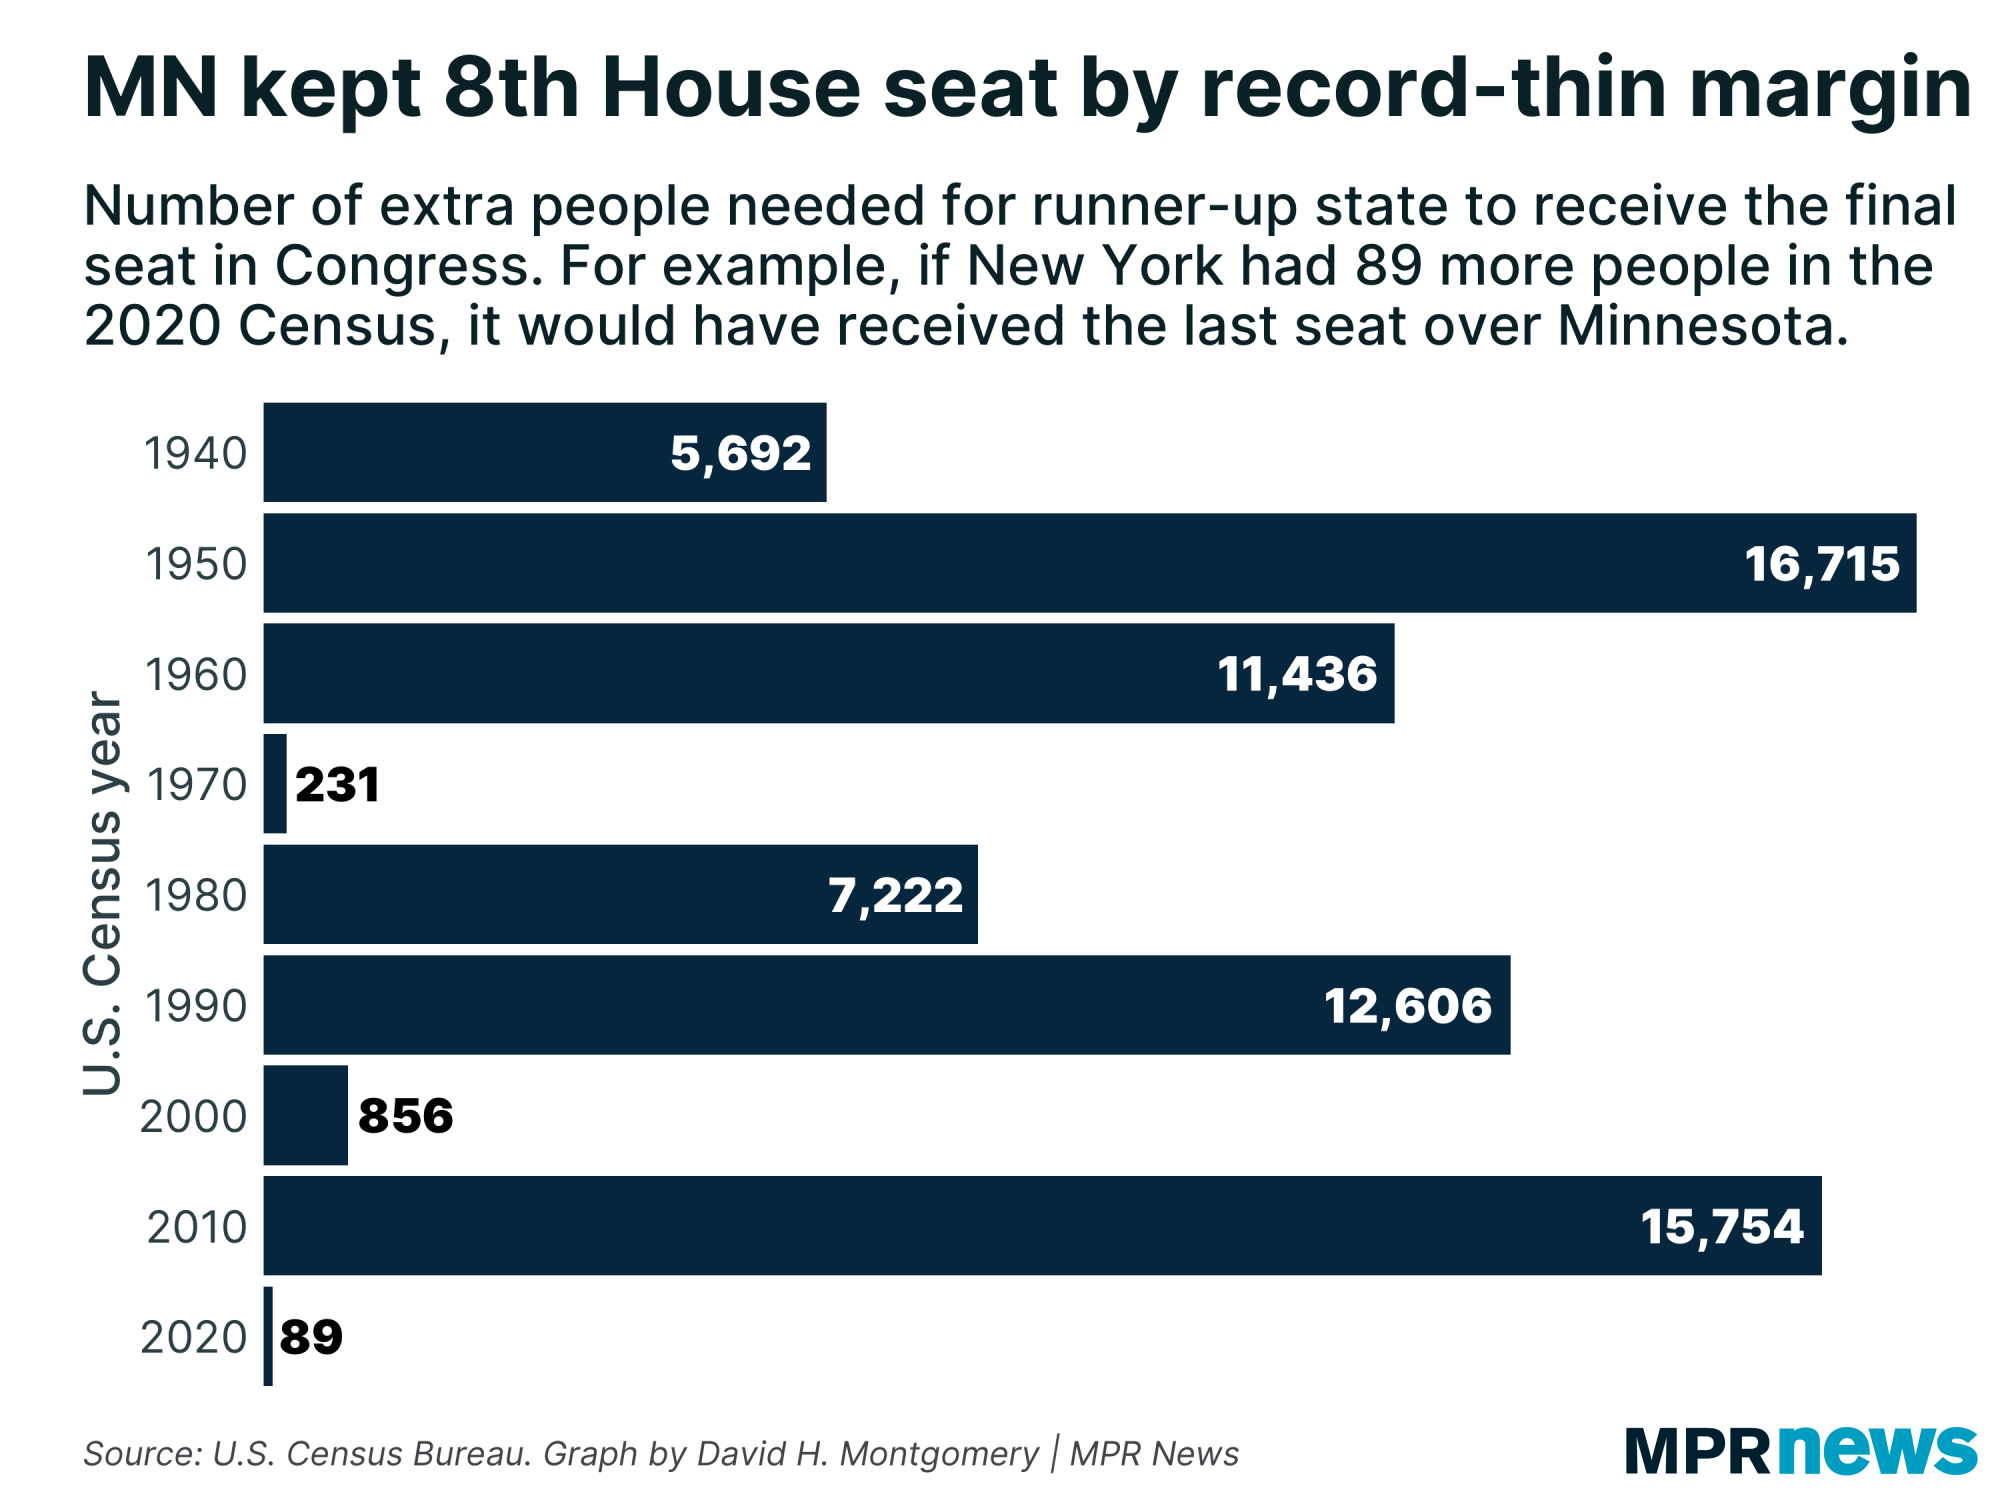 Graphic: Minnesota keeps its 8th House seat by a record-thin margin.